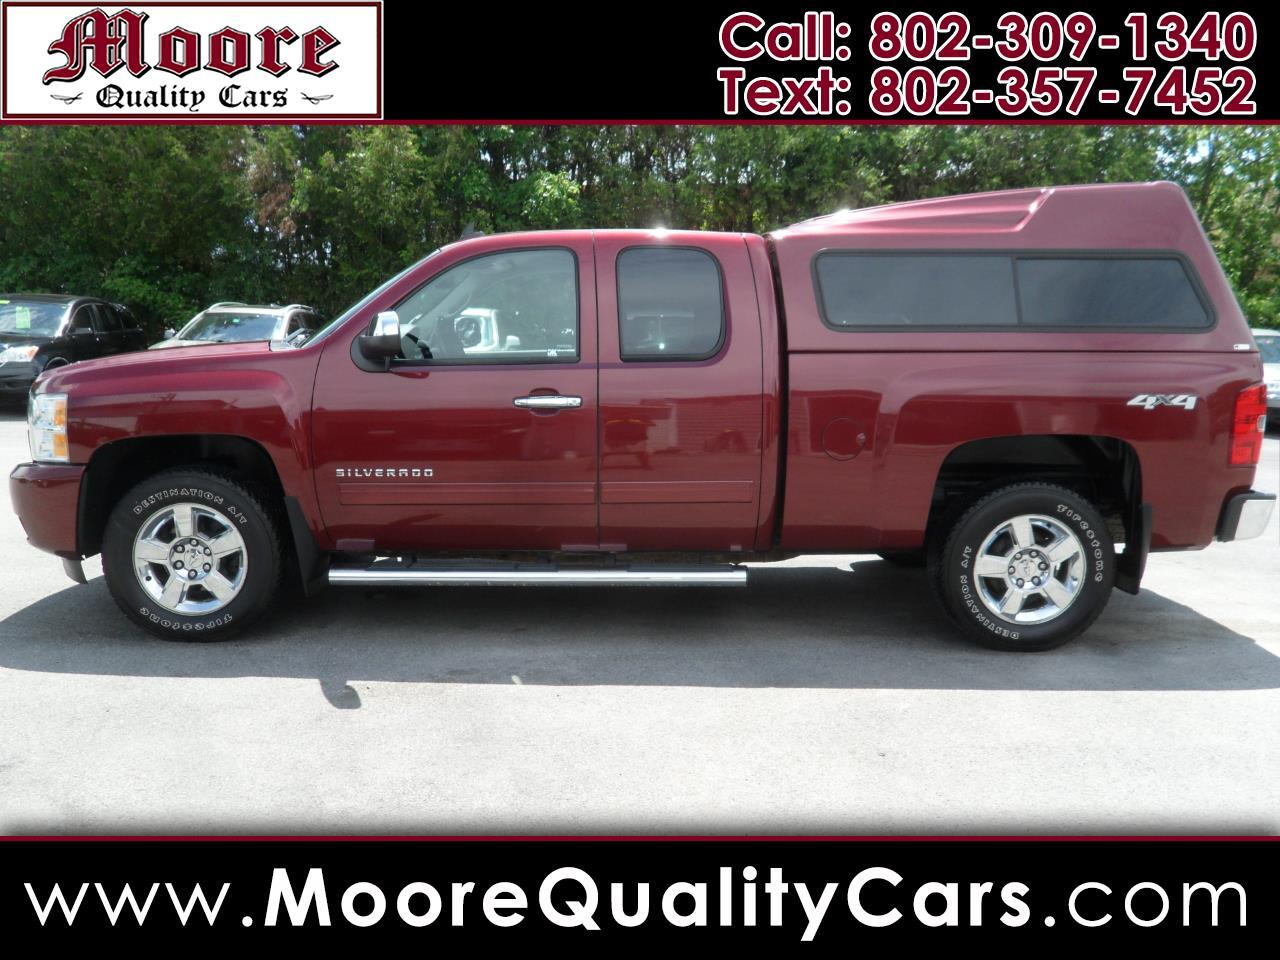 used 2013 chevrolet silverado 1500 4wd ext cab 143 5 ltz for sale in saint albans vt 05478 moore quality cars used 2013 chevrolet silverado 1500 4wd